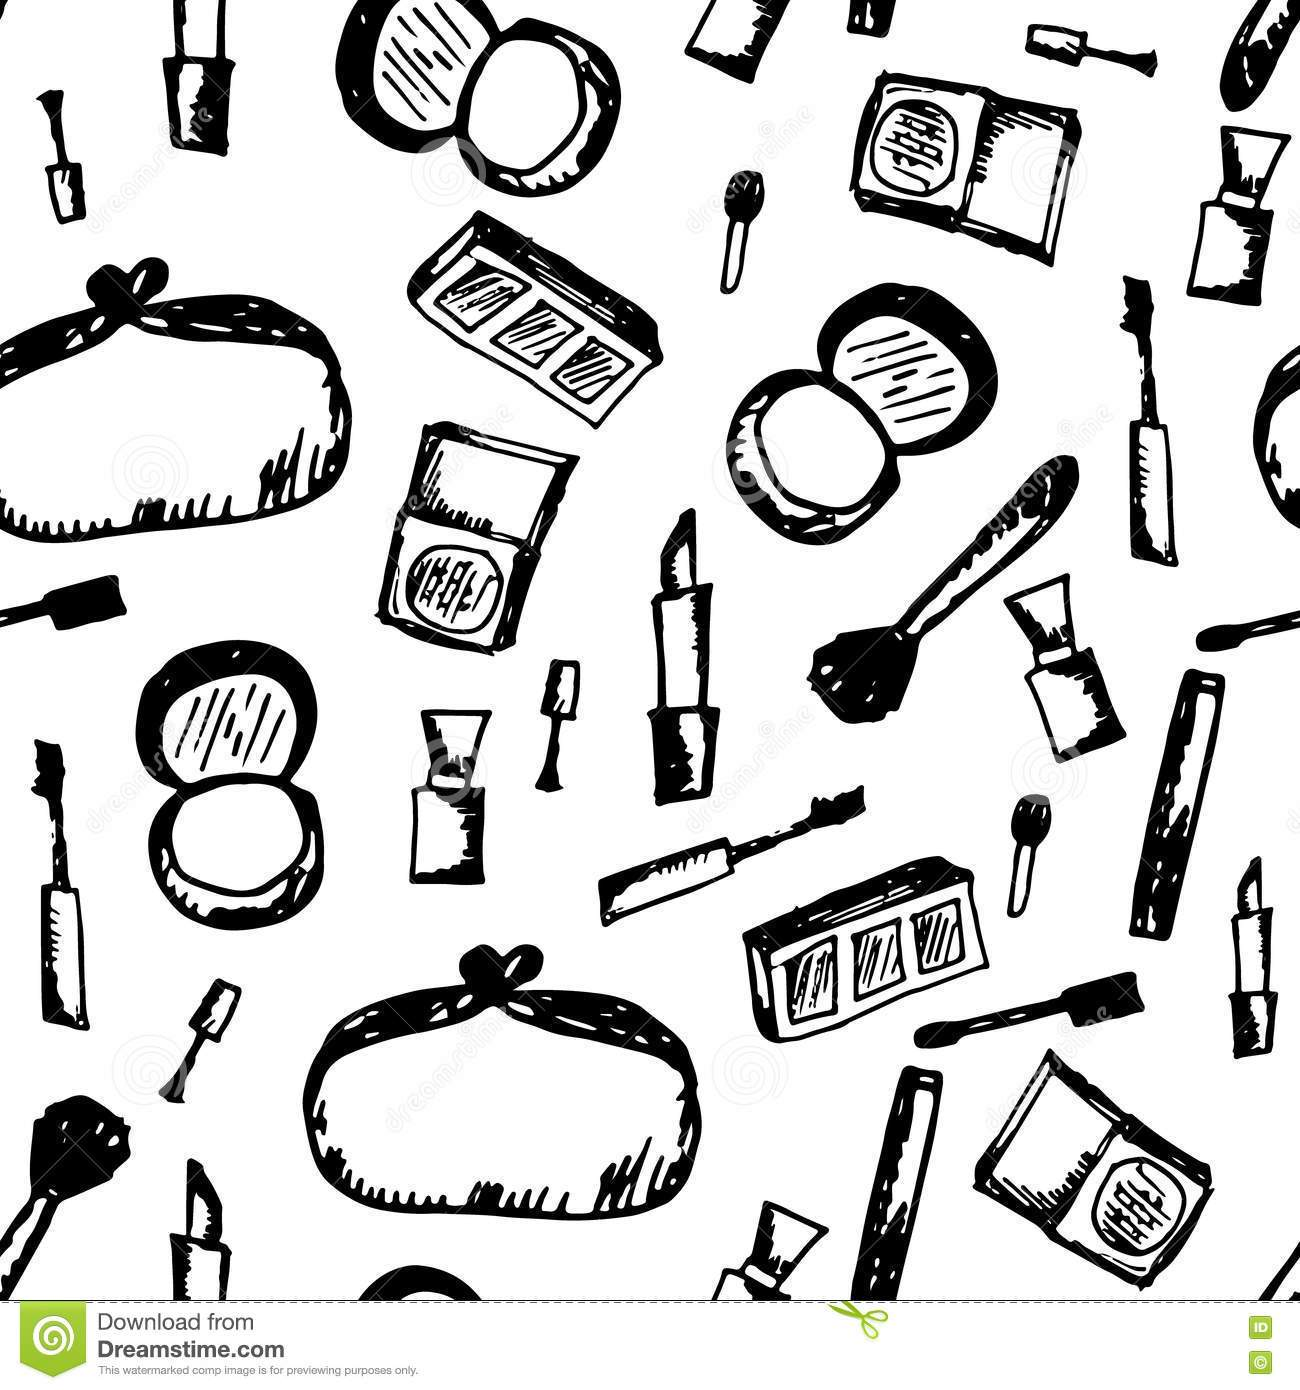 Black and white makeup clipart svg royalty free Makeup clipart black and white 5 » Clipart Portal svg royalty free